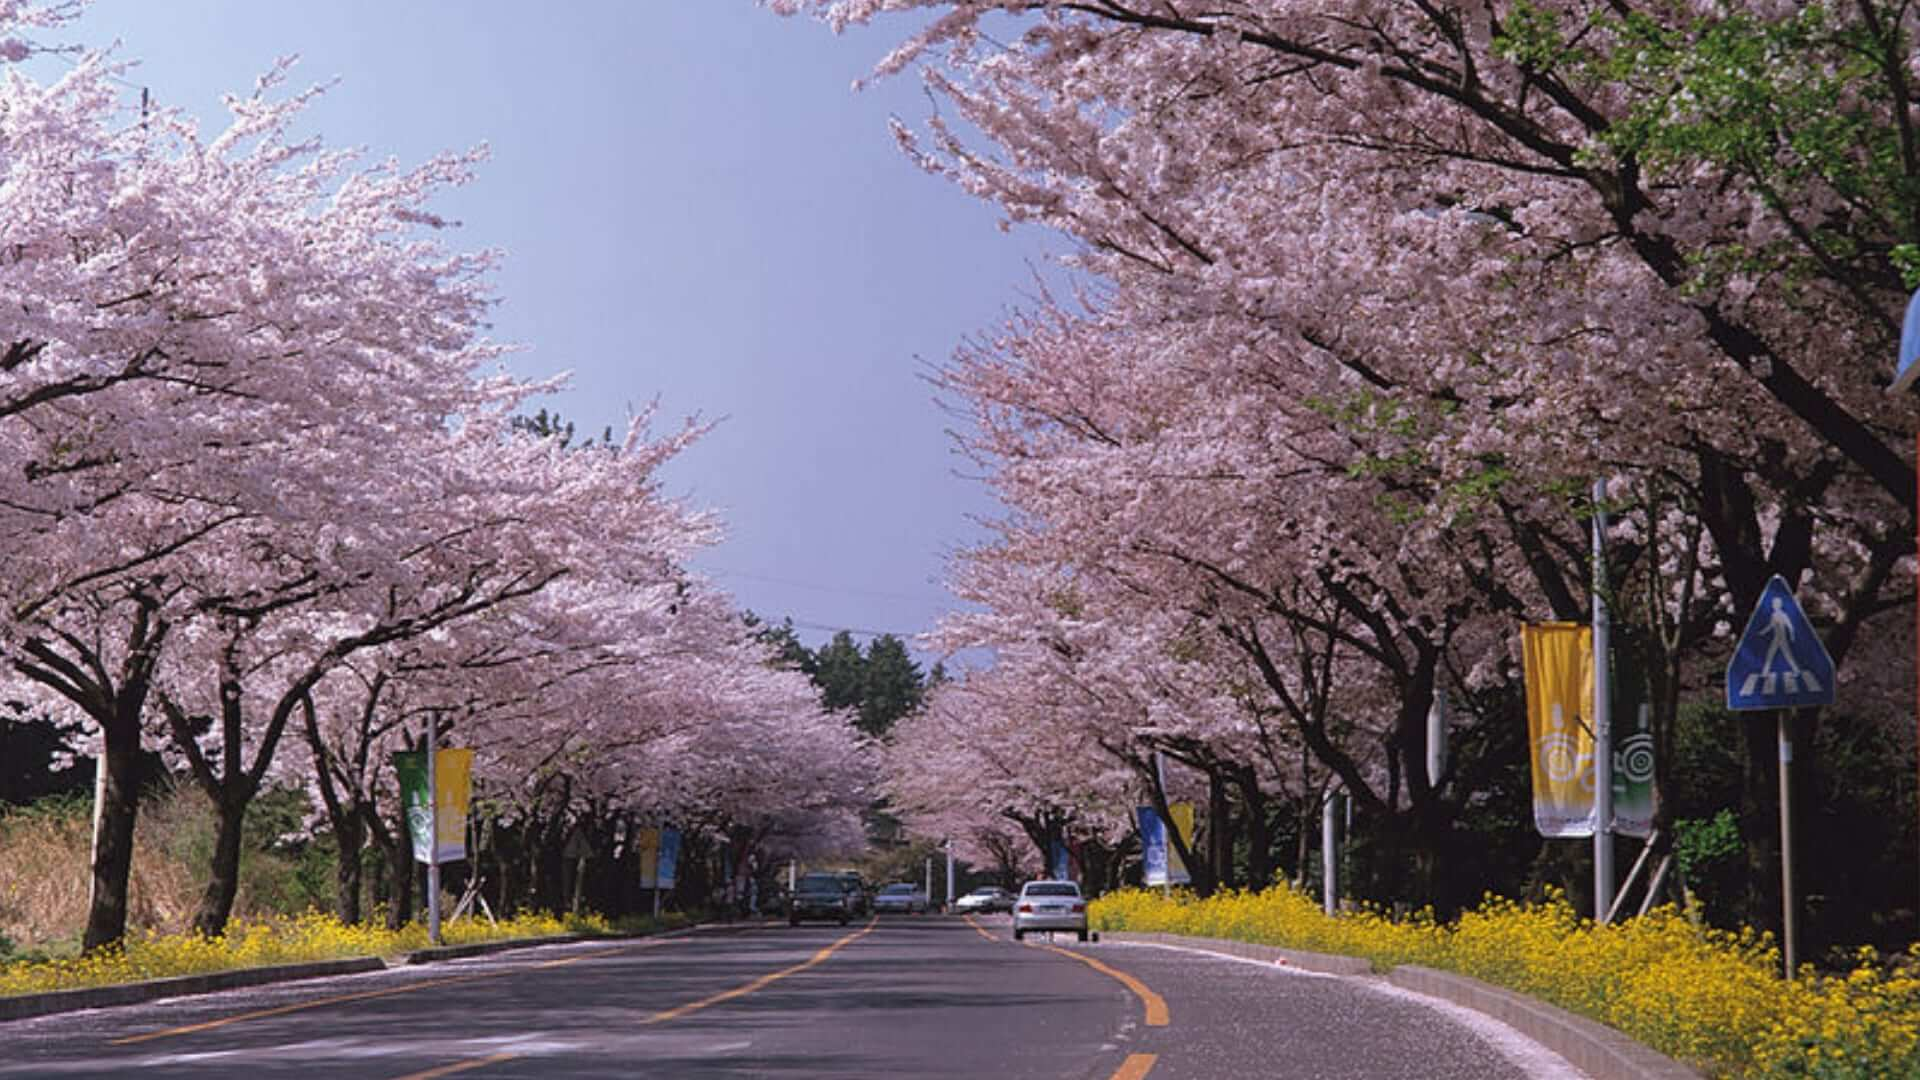 Cars are driving on a wide street with cherry blossom trees next to it on an island in Korea.